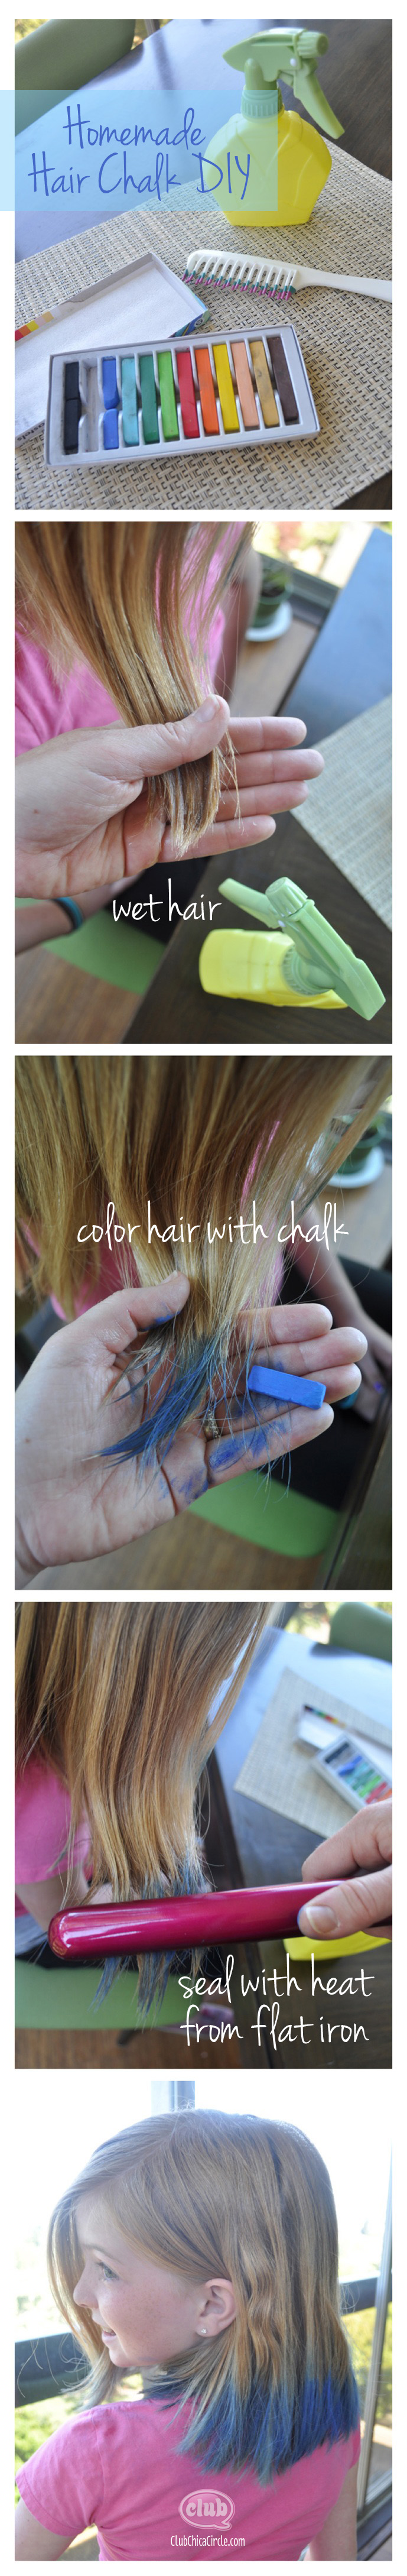 homemade hair chalk DIY @clubchicacircle